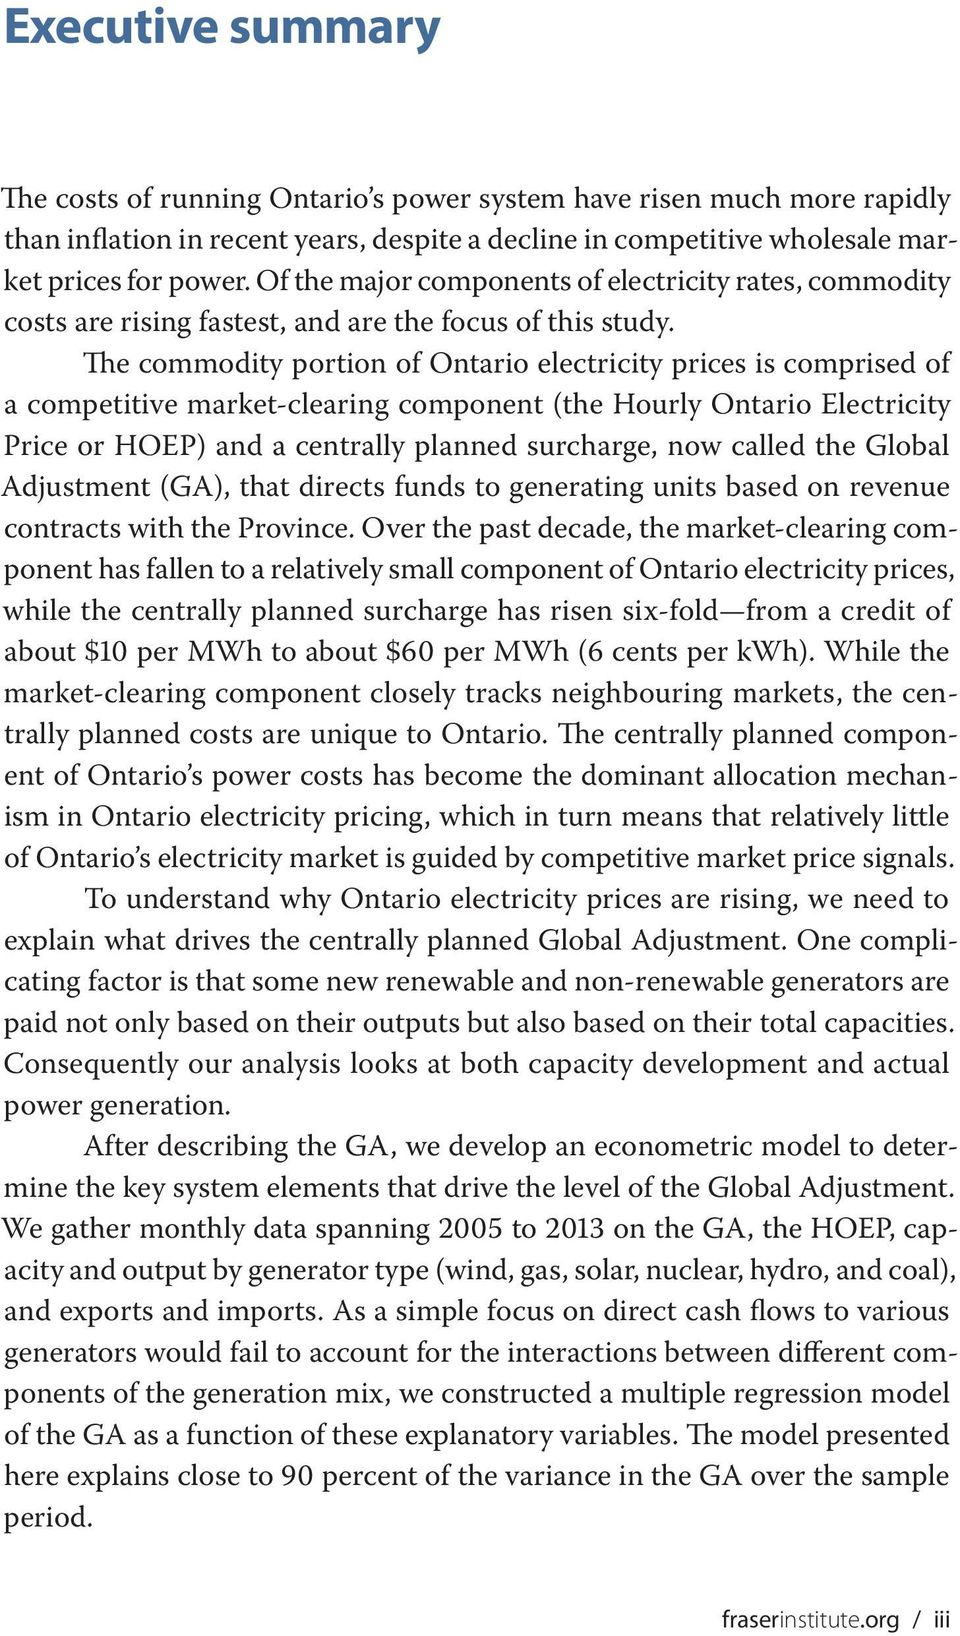 The commodity portion of Ontario electricity prices is comprised of a competitive market-clearing component (the Hourly Ontario Electricity Price or HOEP) and a centrally planned surcharge, now